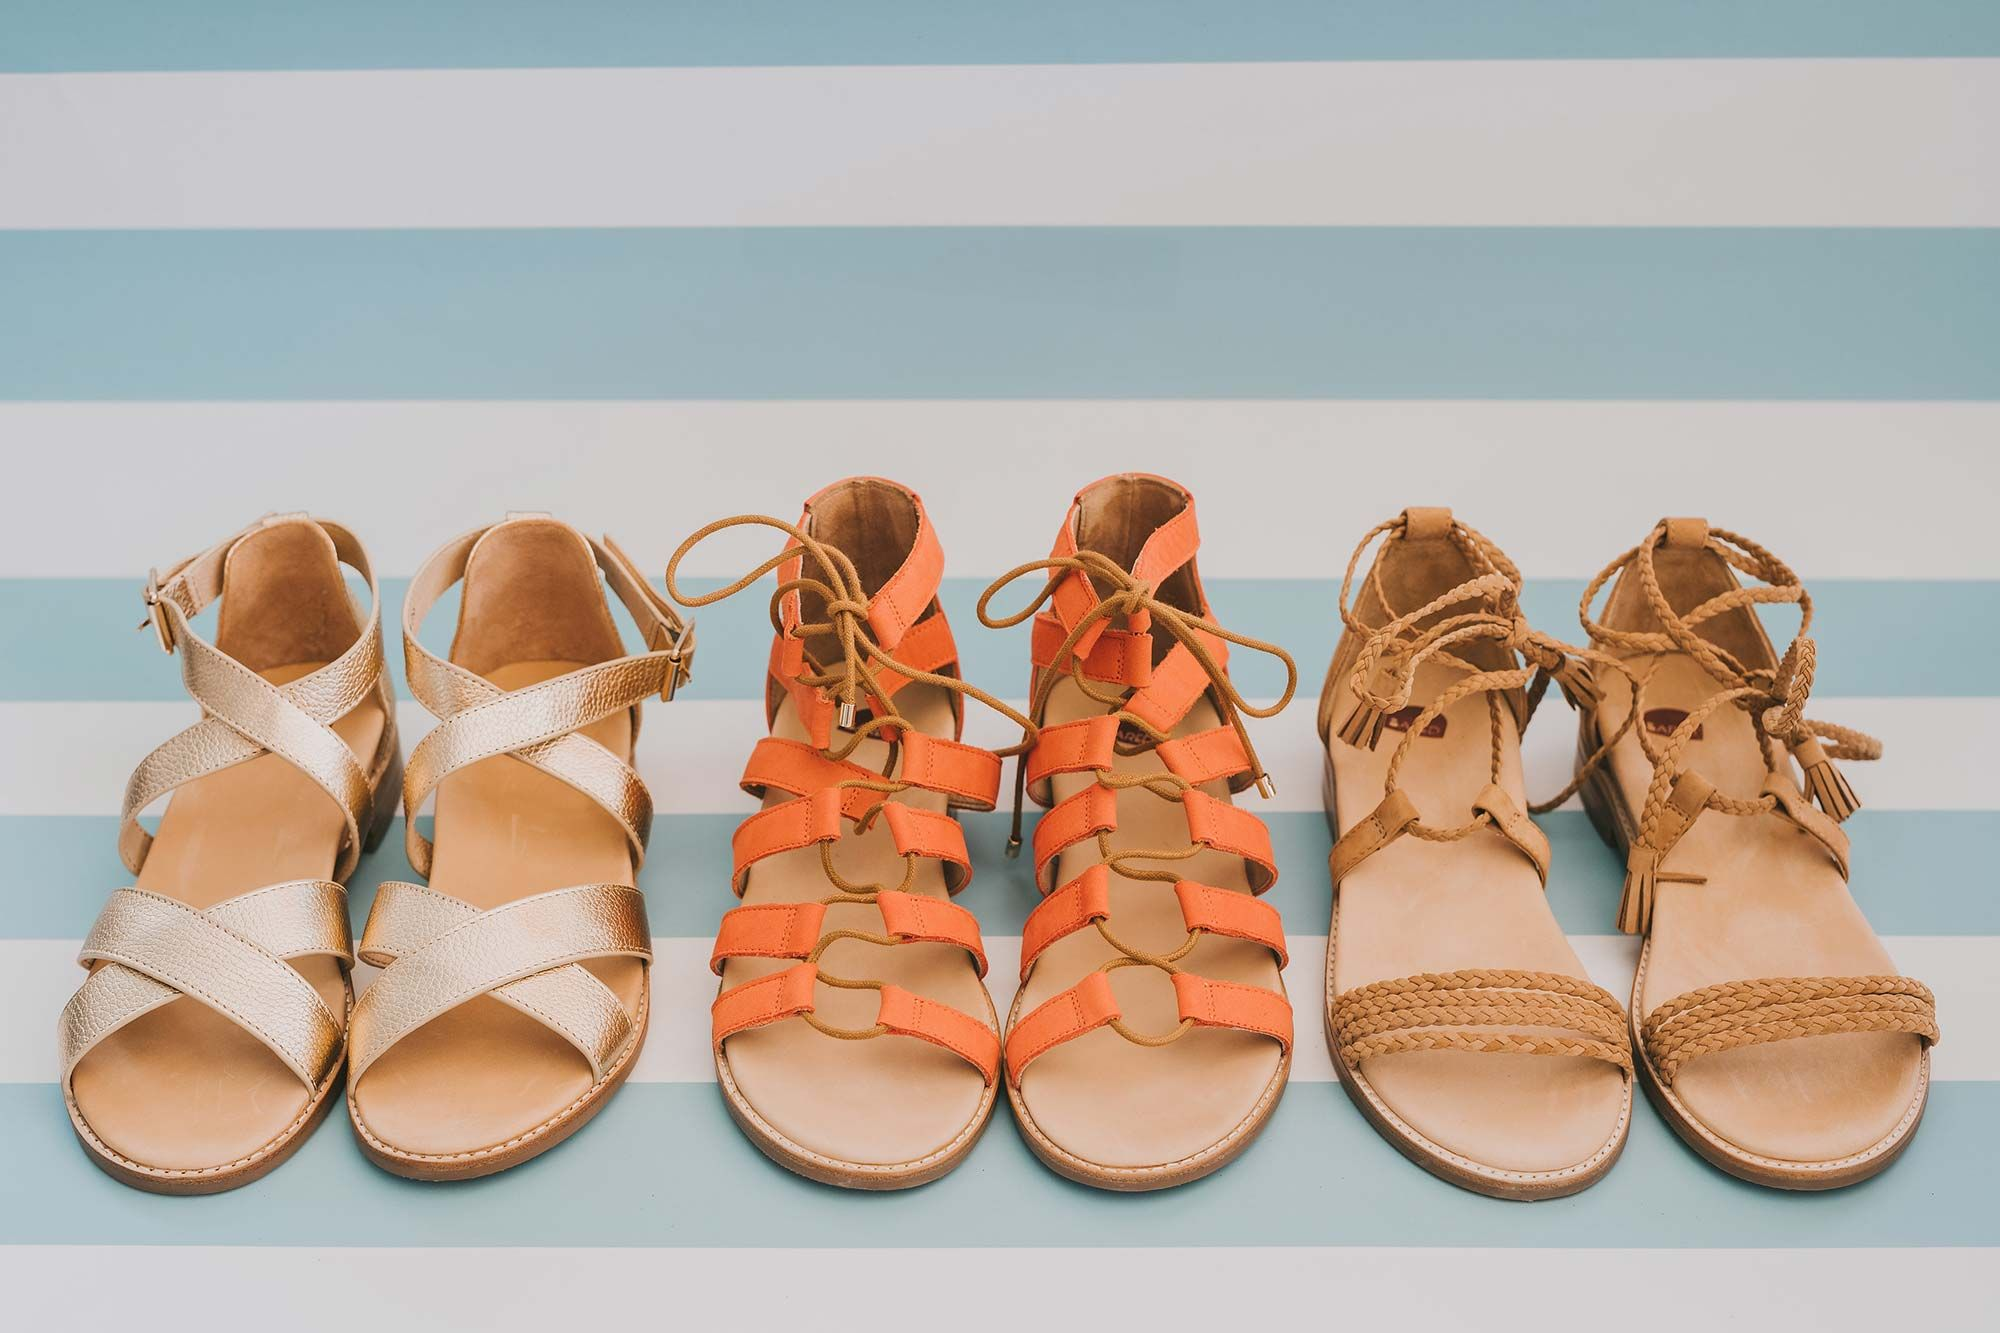 Bared_Footwear_Engagement_Party_With_Lenzo_Womens_Gold_Leather_Robin_Sandals_Tangerine_Goose_Tan_Galah_Sandals